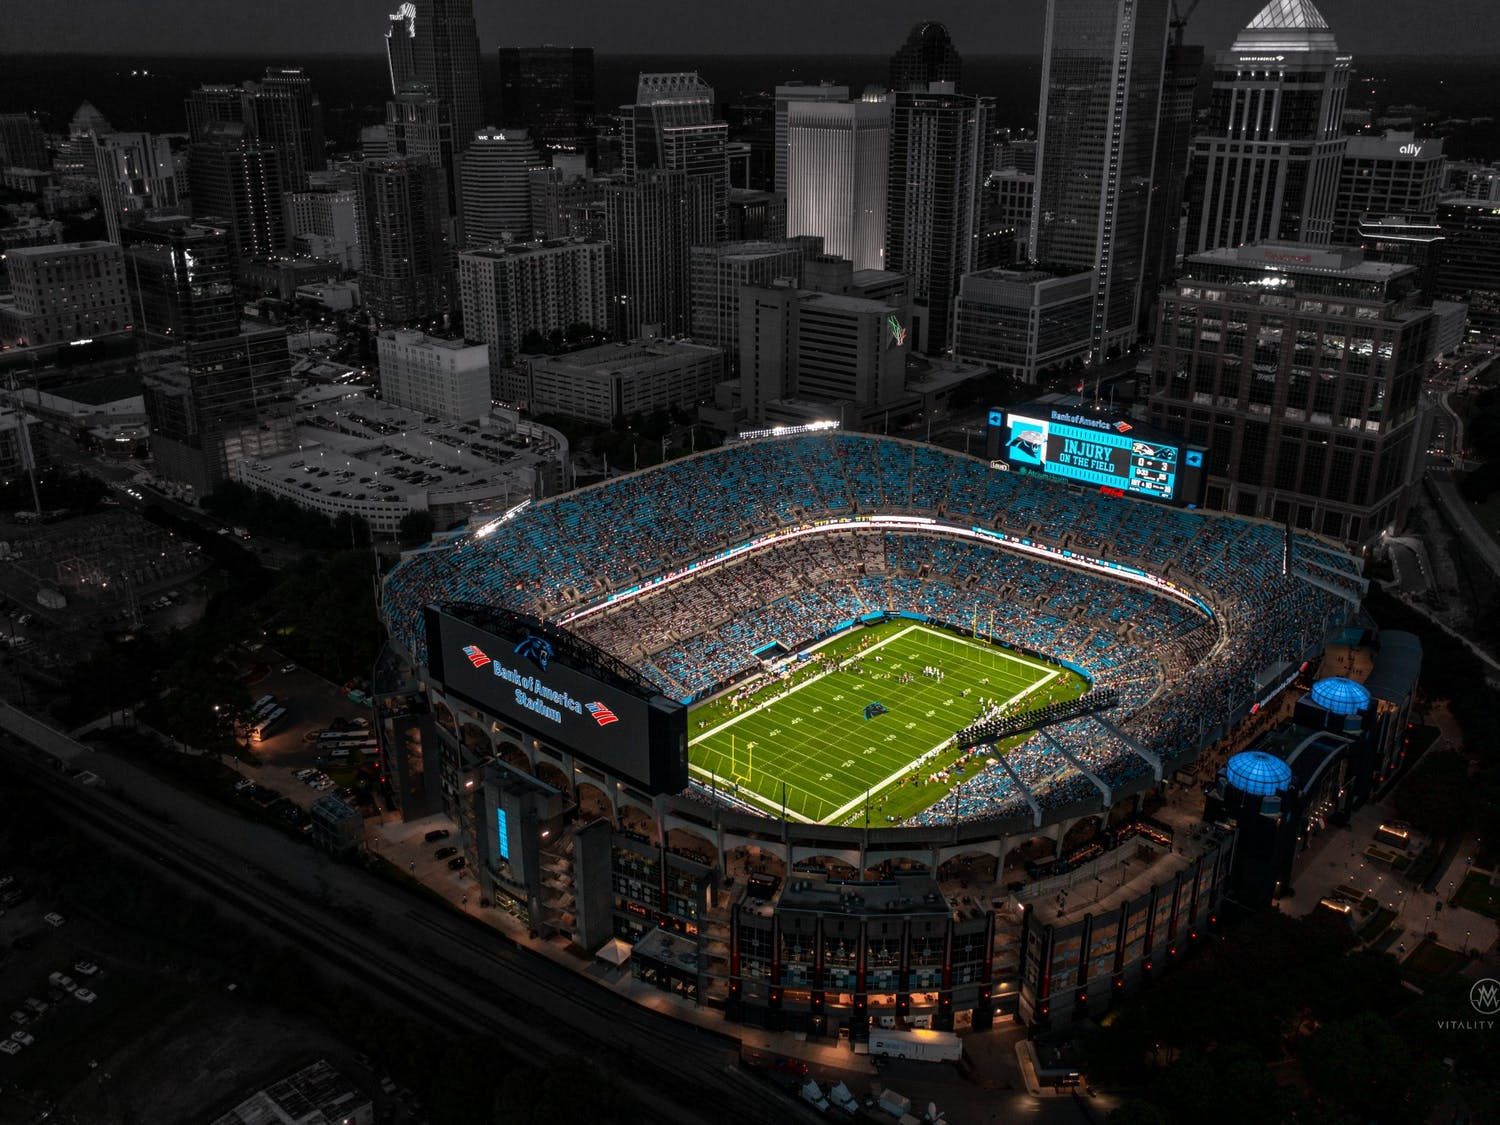 The Bank of America Stadium located in Charlotte, North Carolina, is home to the Carolina Panthers.